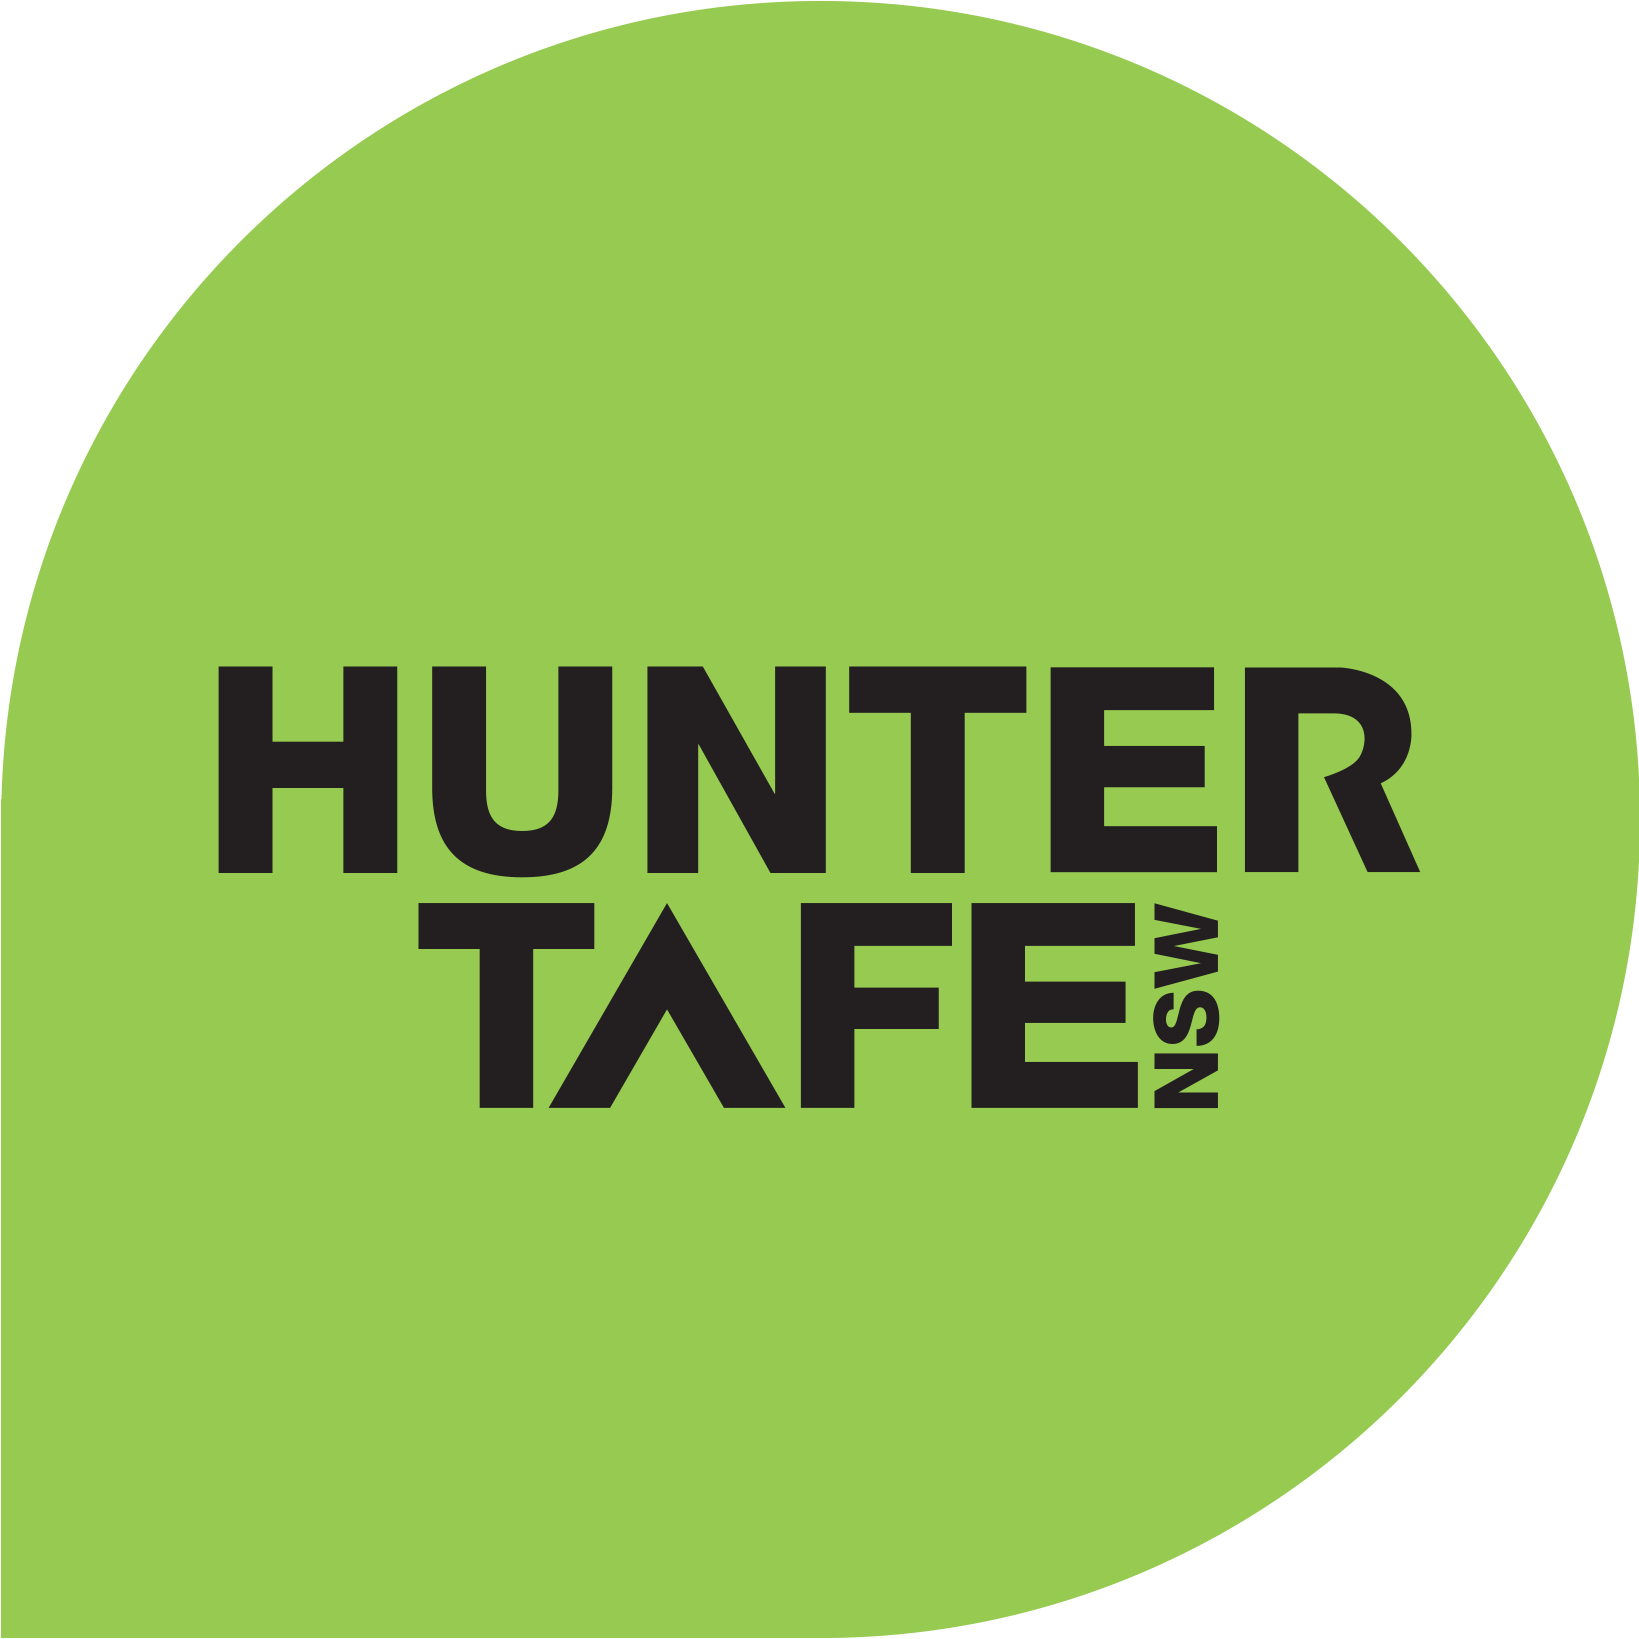 Hunter-TAFE-logo-HiRes-010914.png